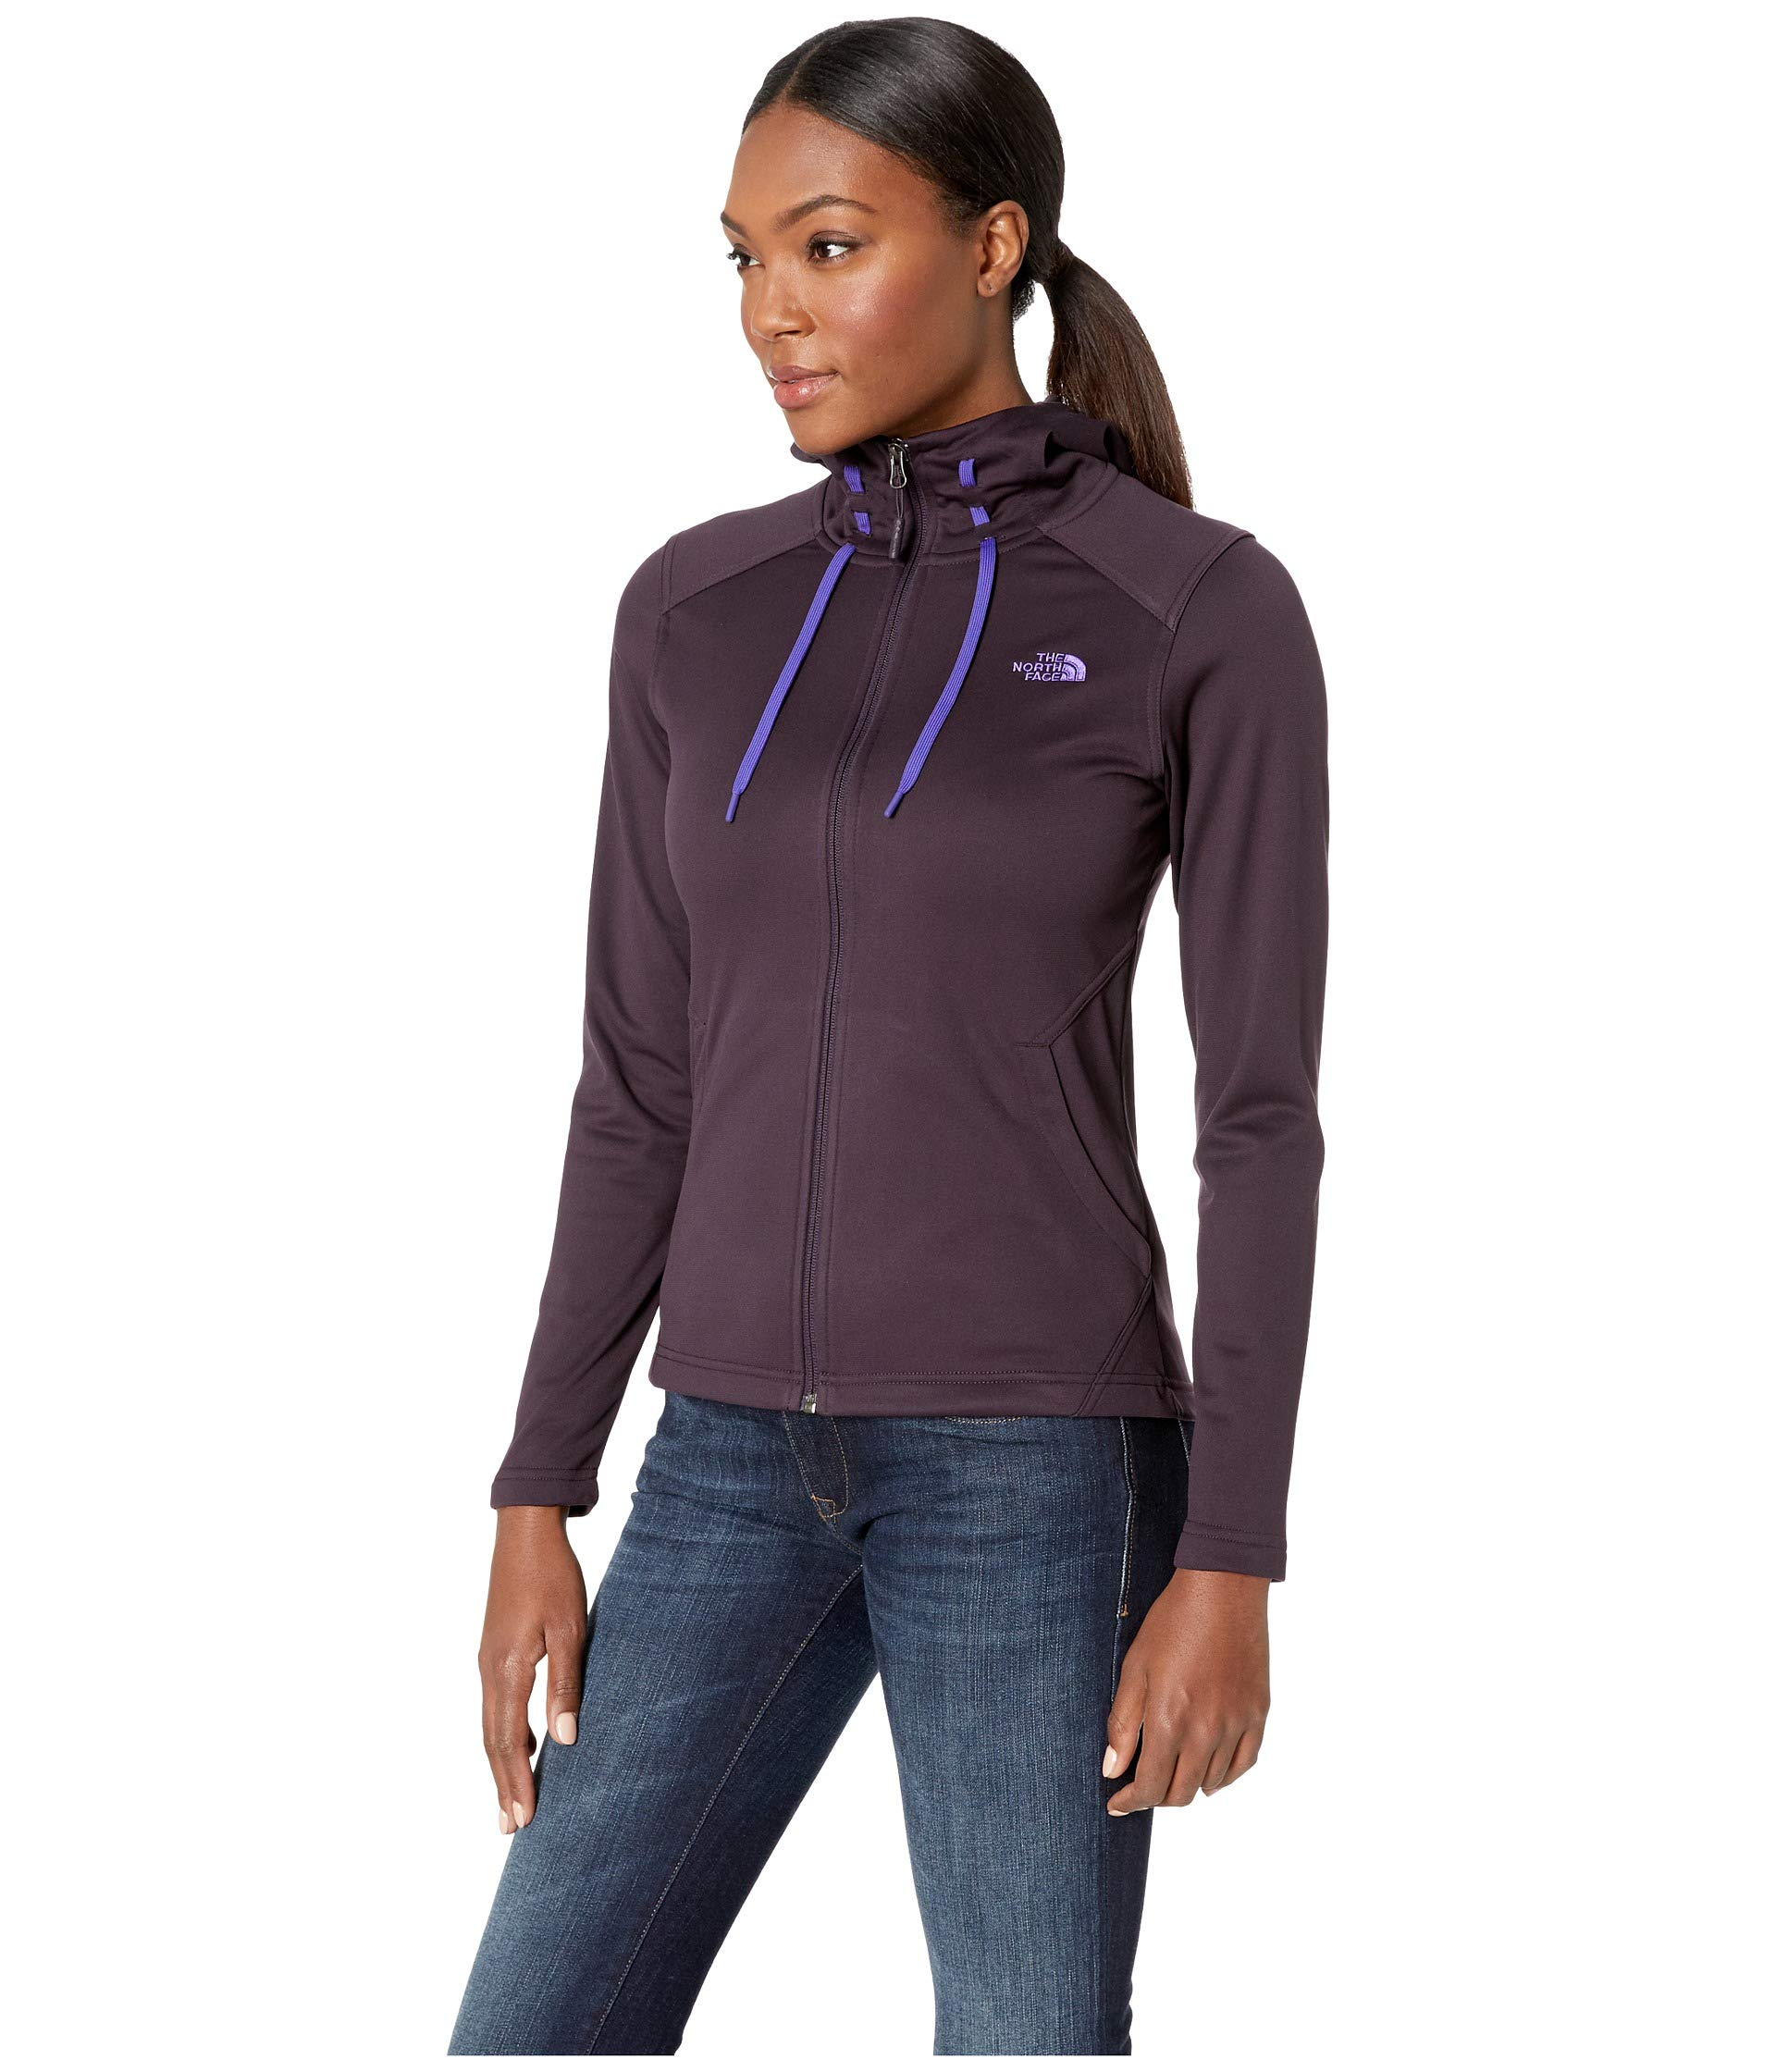 Galaxy Tech North Hoodie Face The Purple Mezzaluna BwX8Fq1vZE